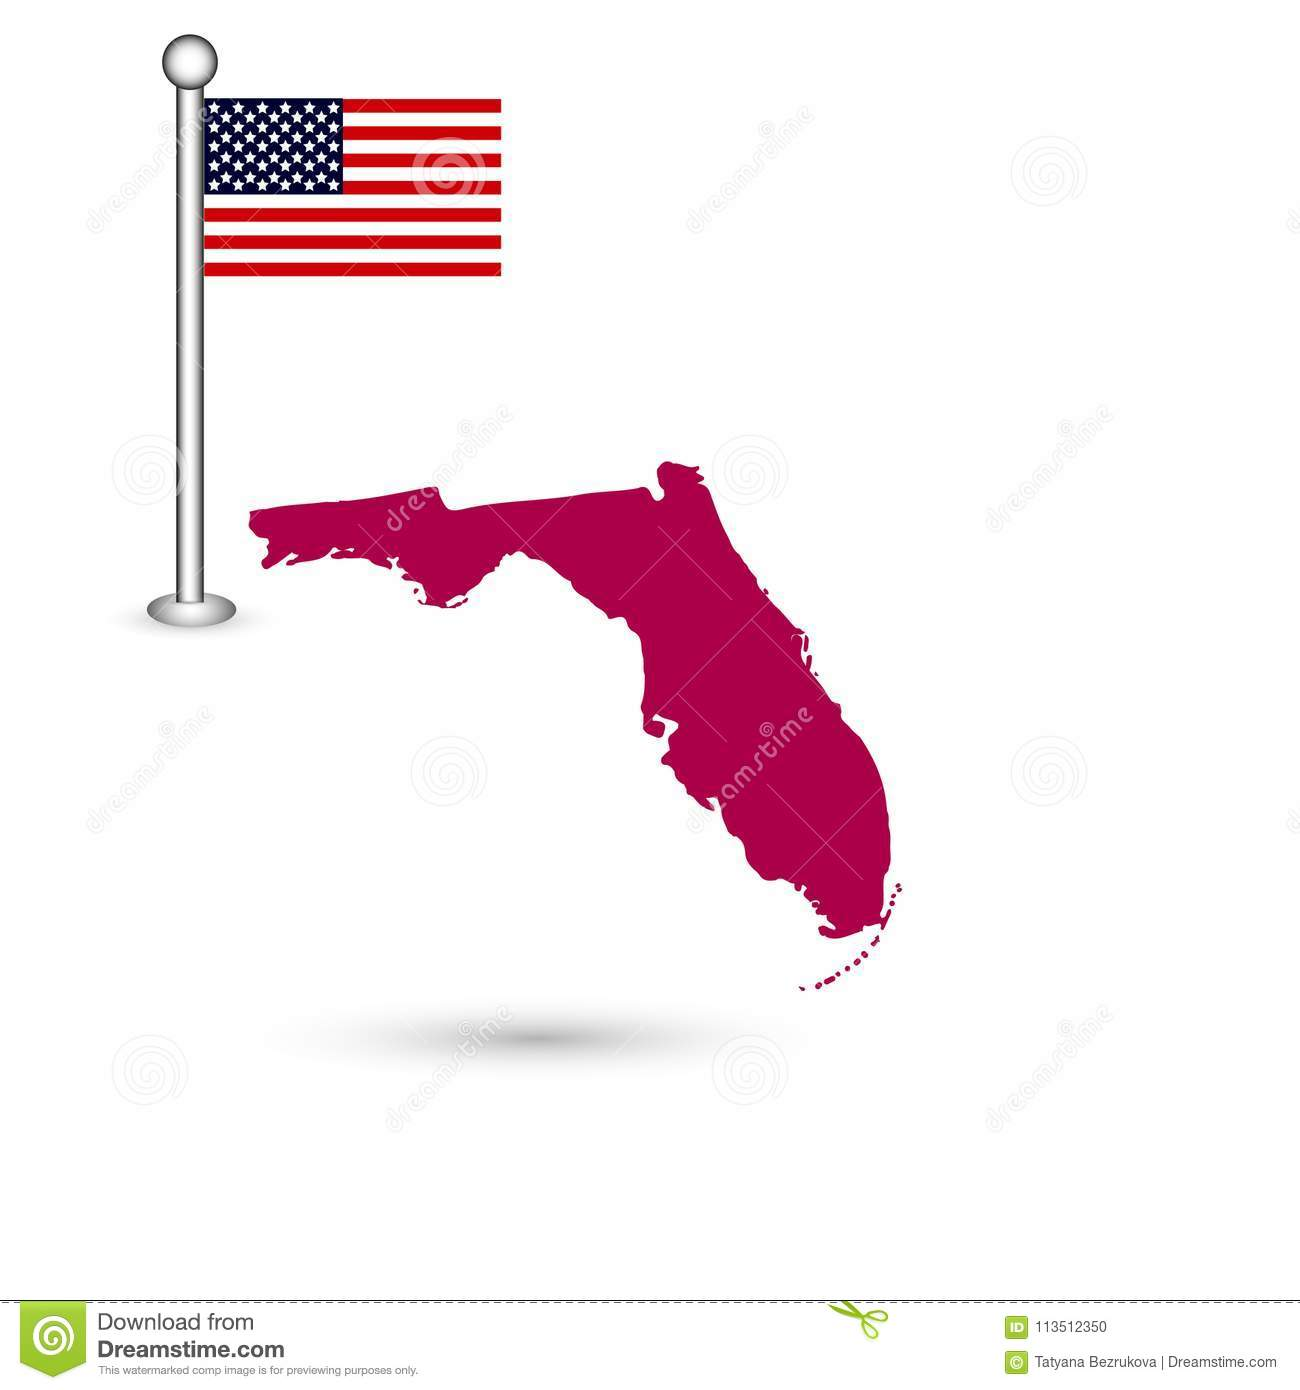 Map Of The U.S. State Of Florida On A White Background ... Shape Of Florida On Map on maps of delaware shape, florida state shape, map of connecticut shape, map of kentucky shape, map of washington dc shape,